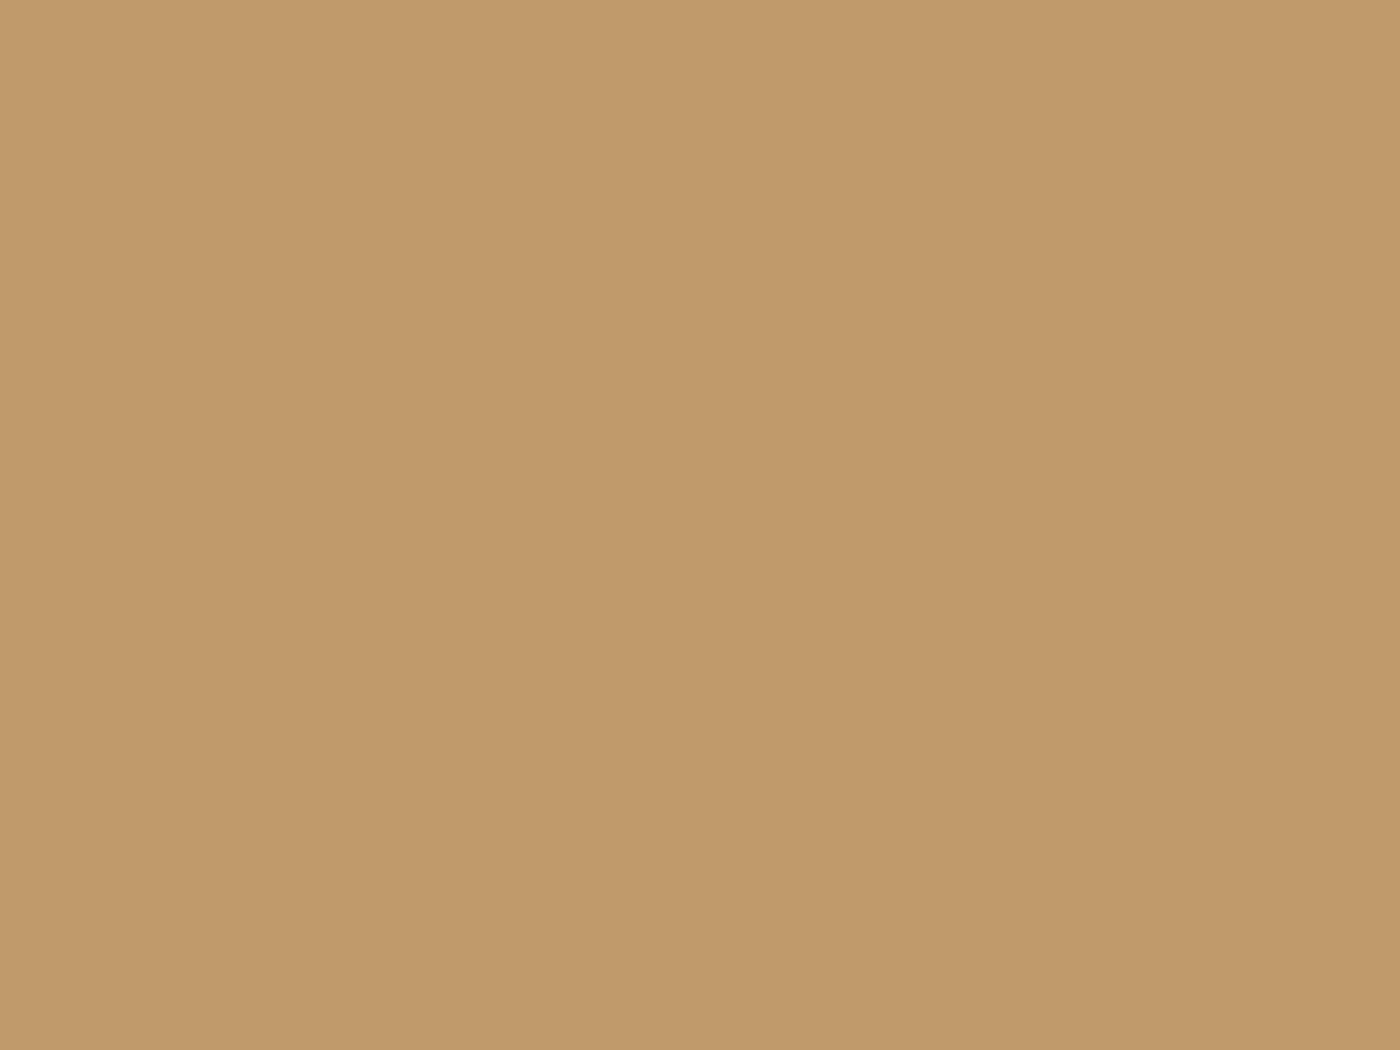 1400x1050 Desert Solid Color Background